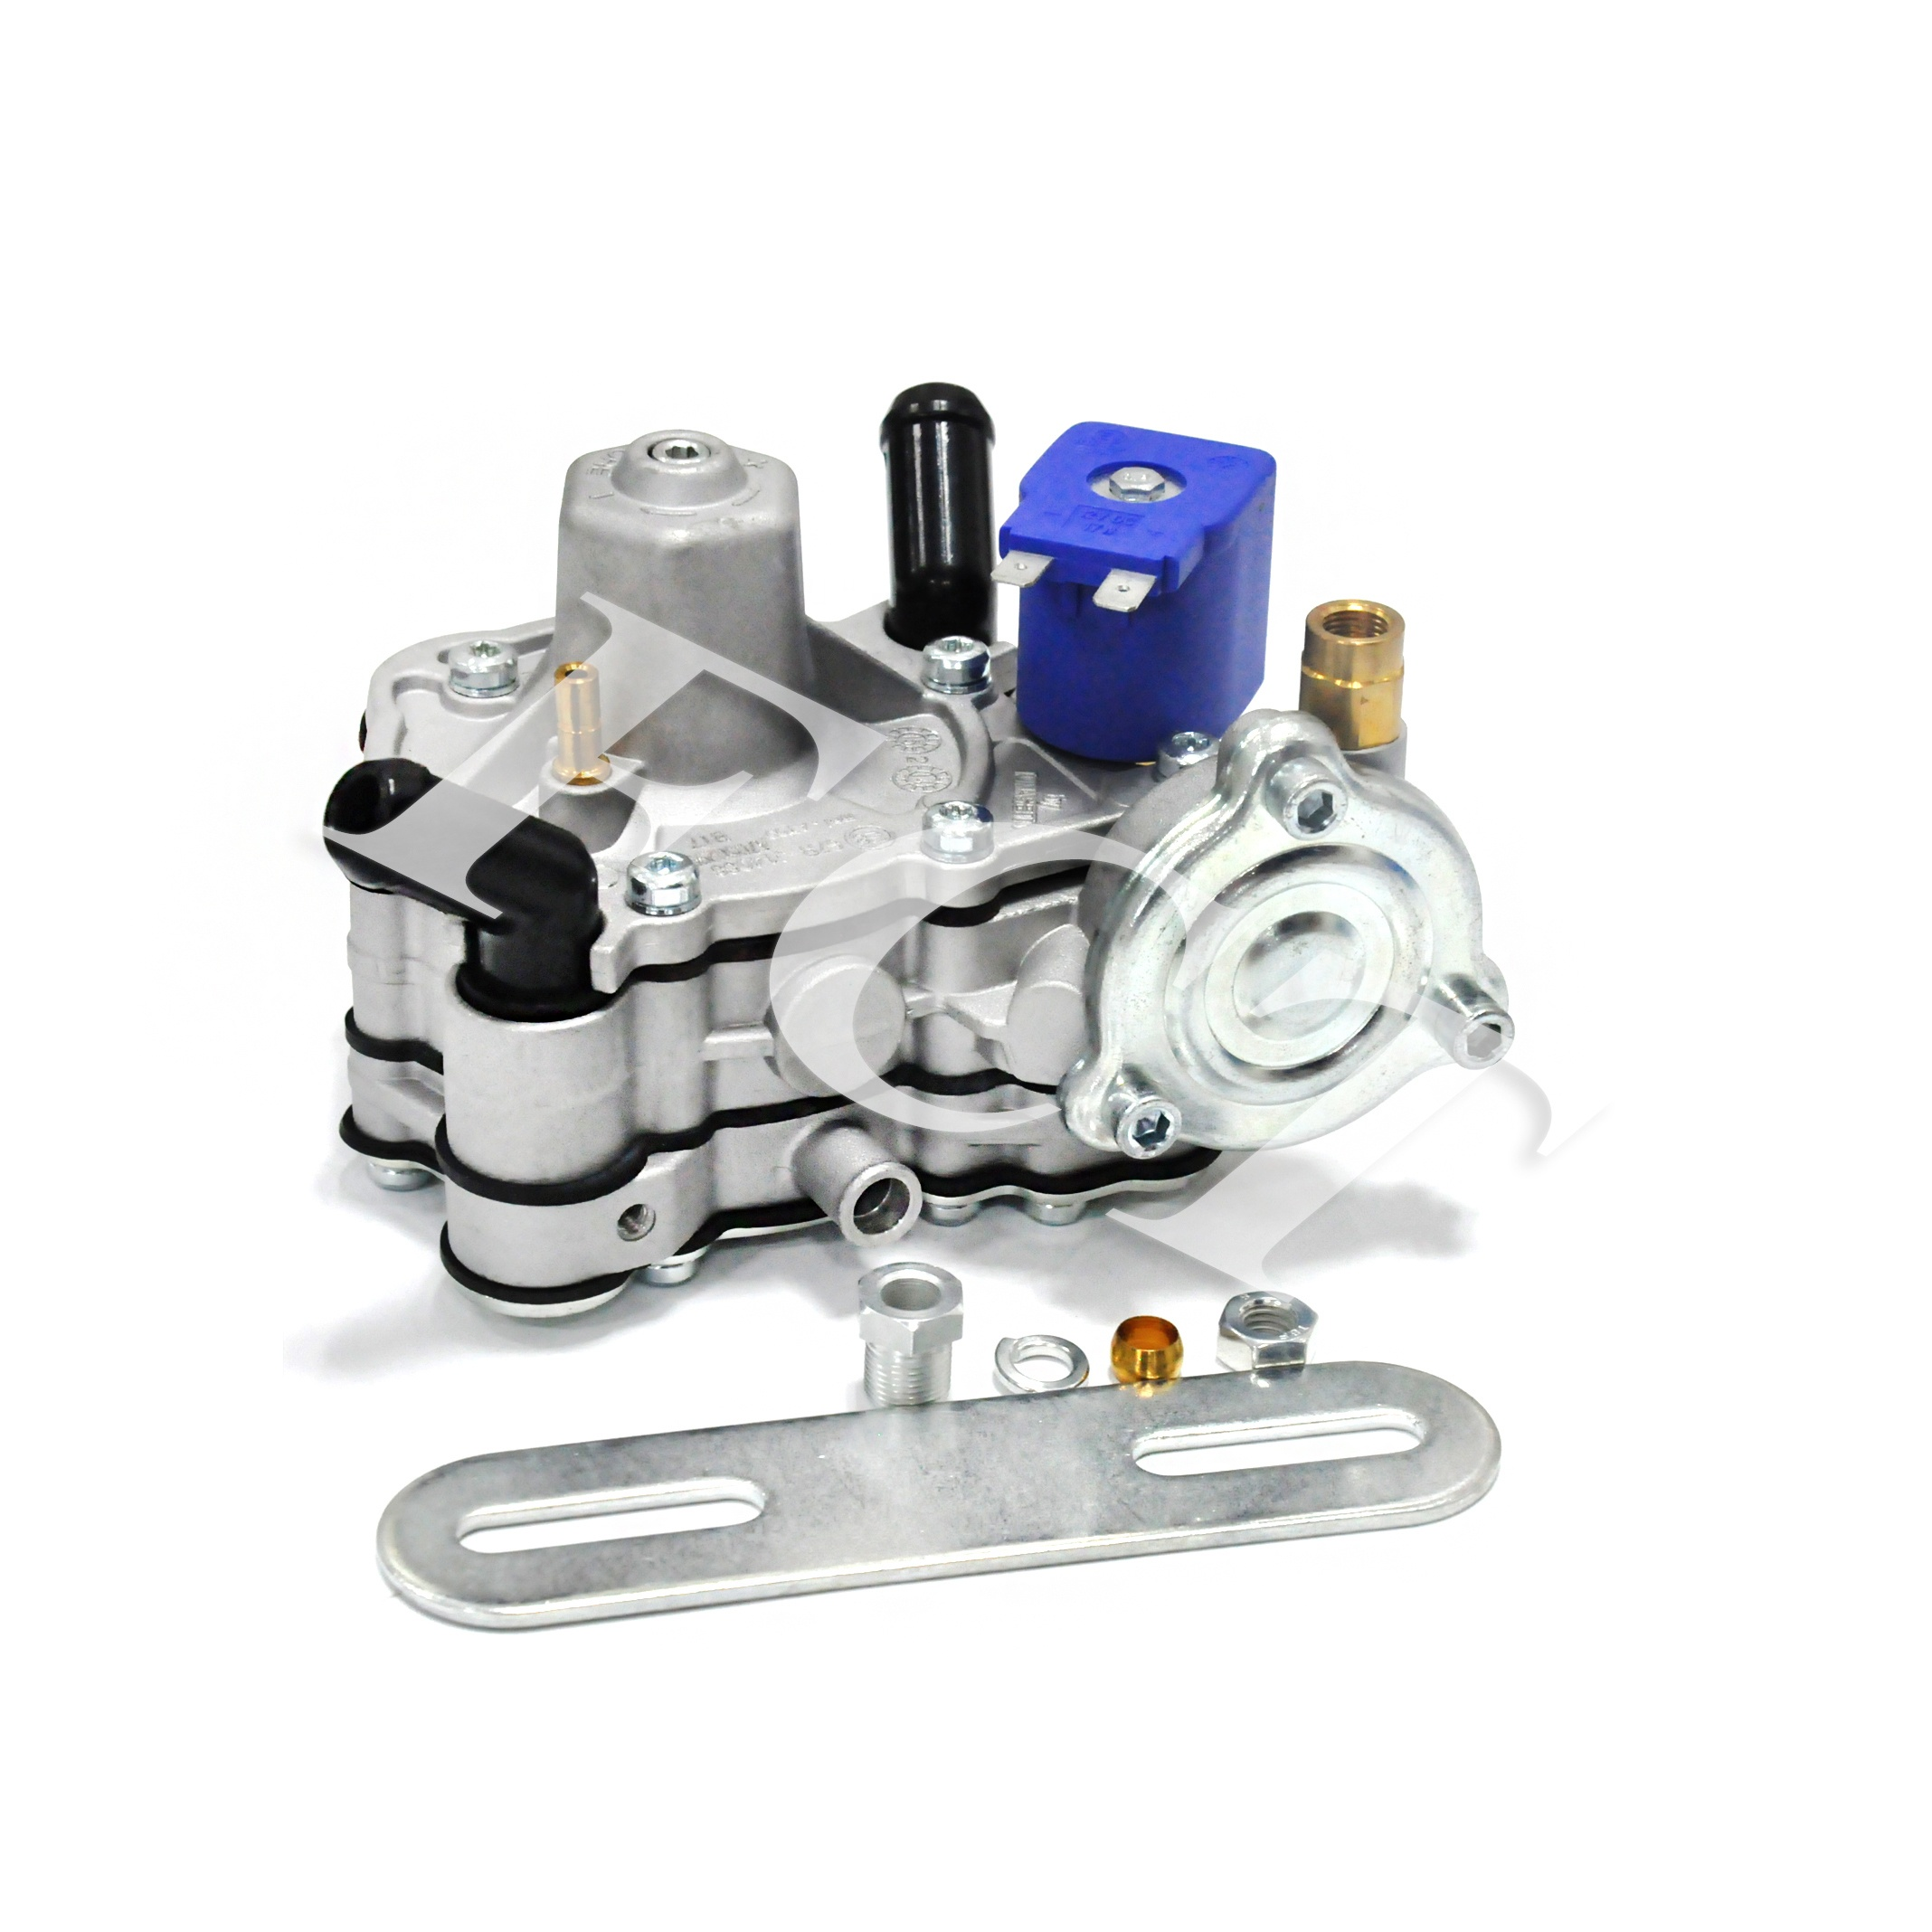 FC <strong>natural</strong> <strong>gas</strong> injectors electric car <strong>kit</strong> <strong>natural</strong> <strong>gas</strong> regulator adjustment AT09 lpg regulator